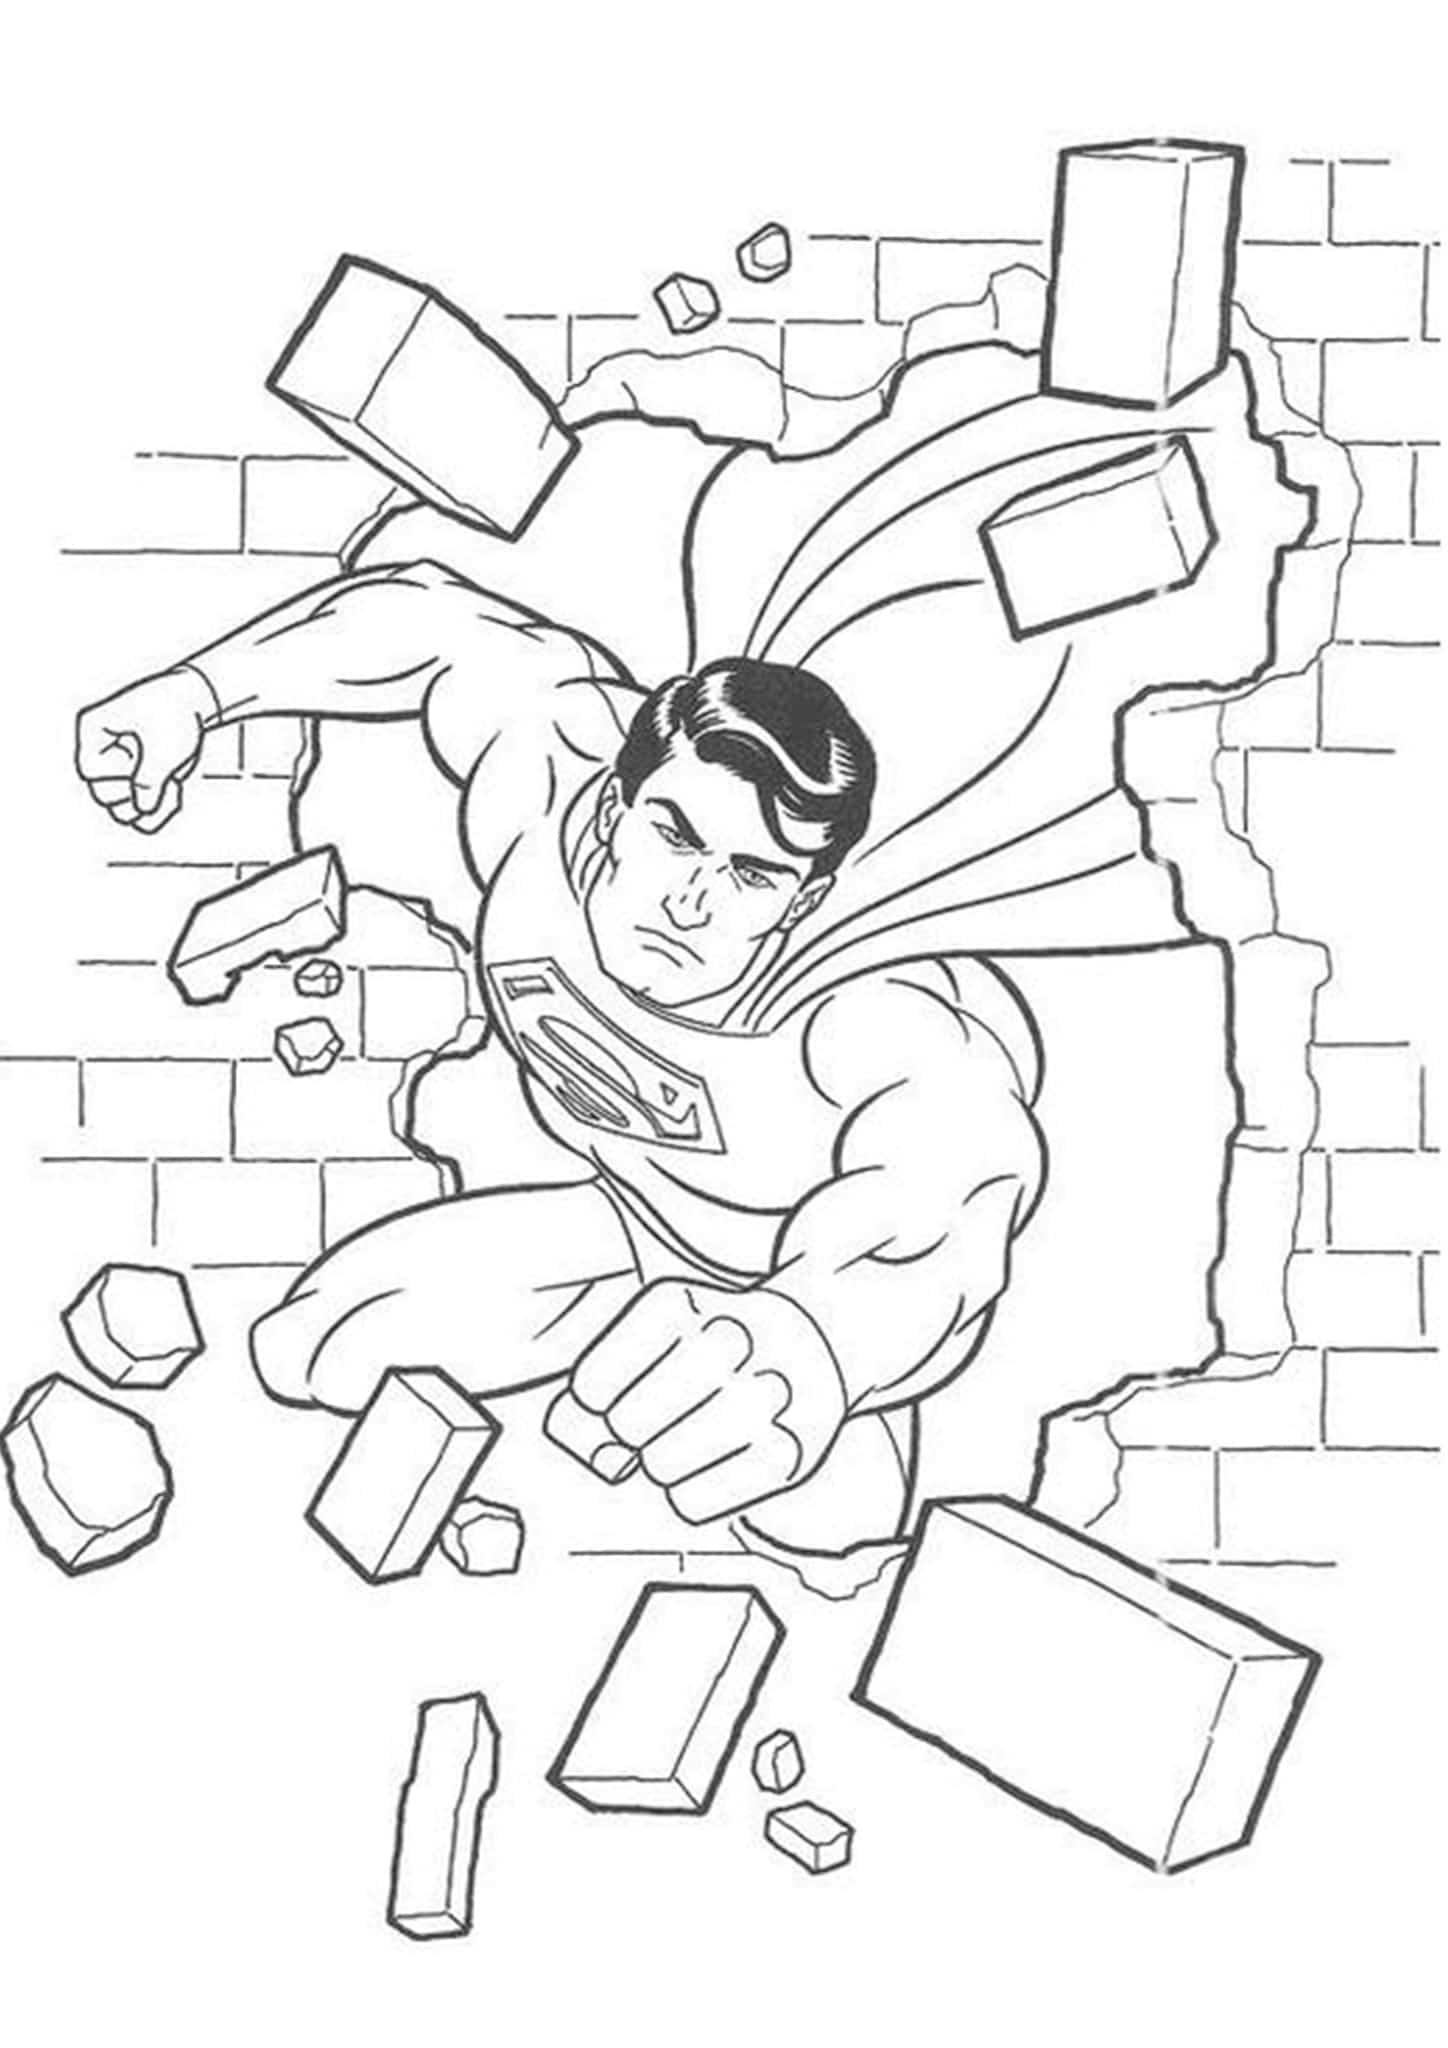 Superman breaking through the wall